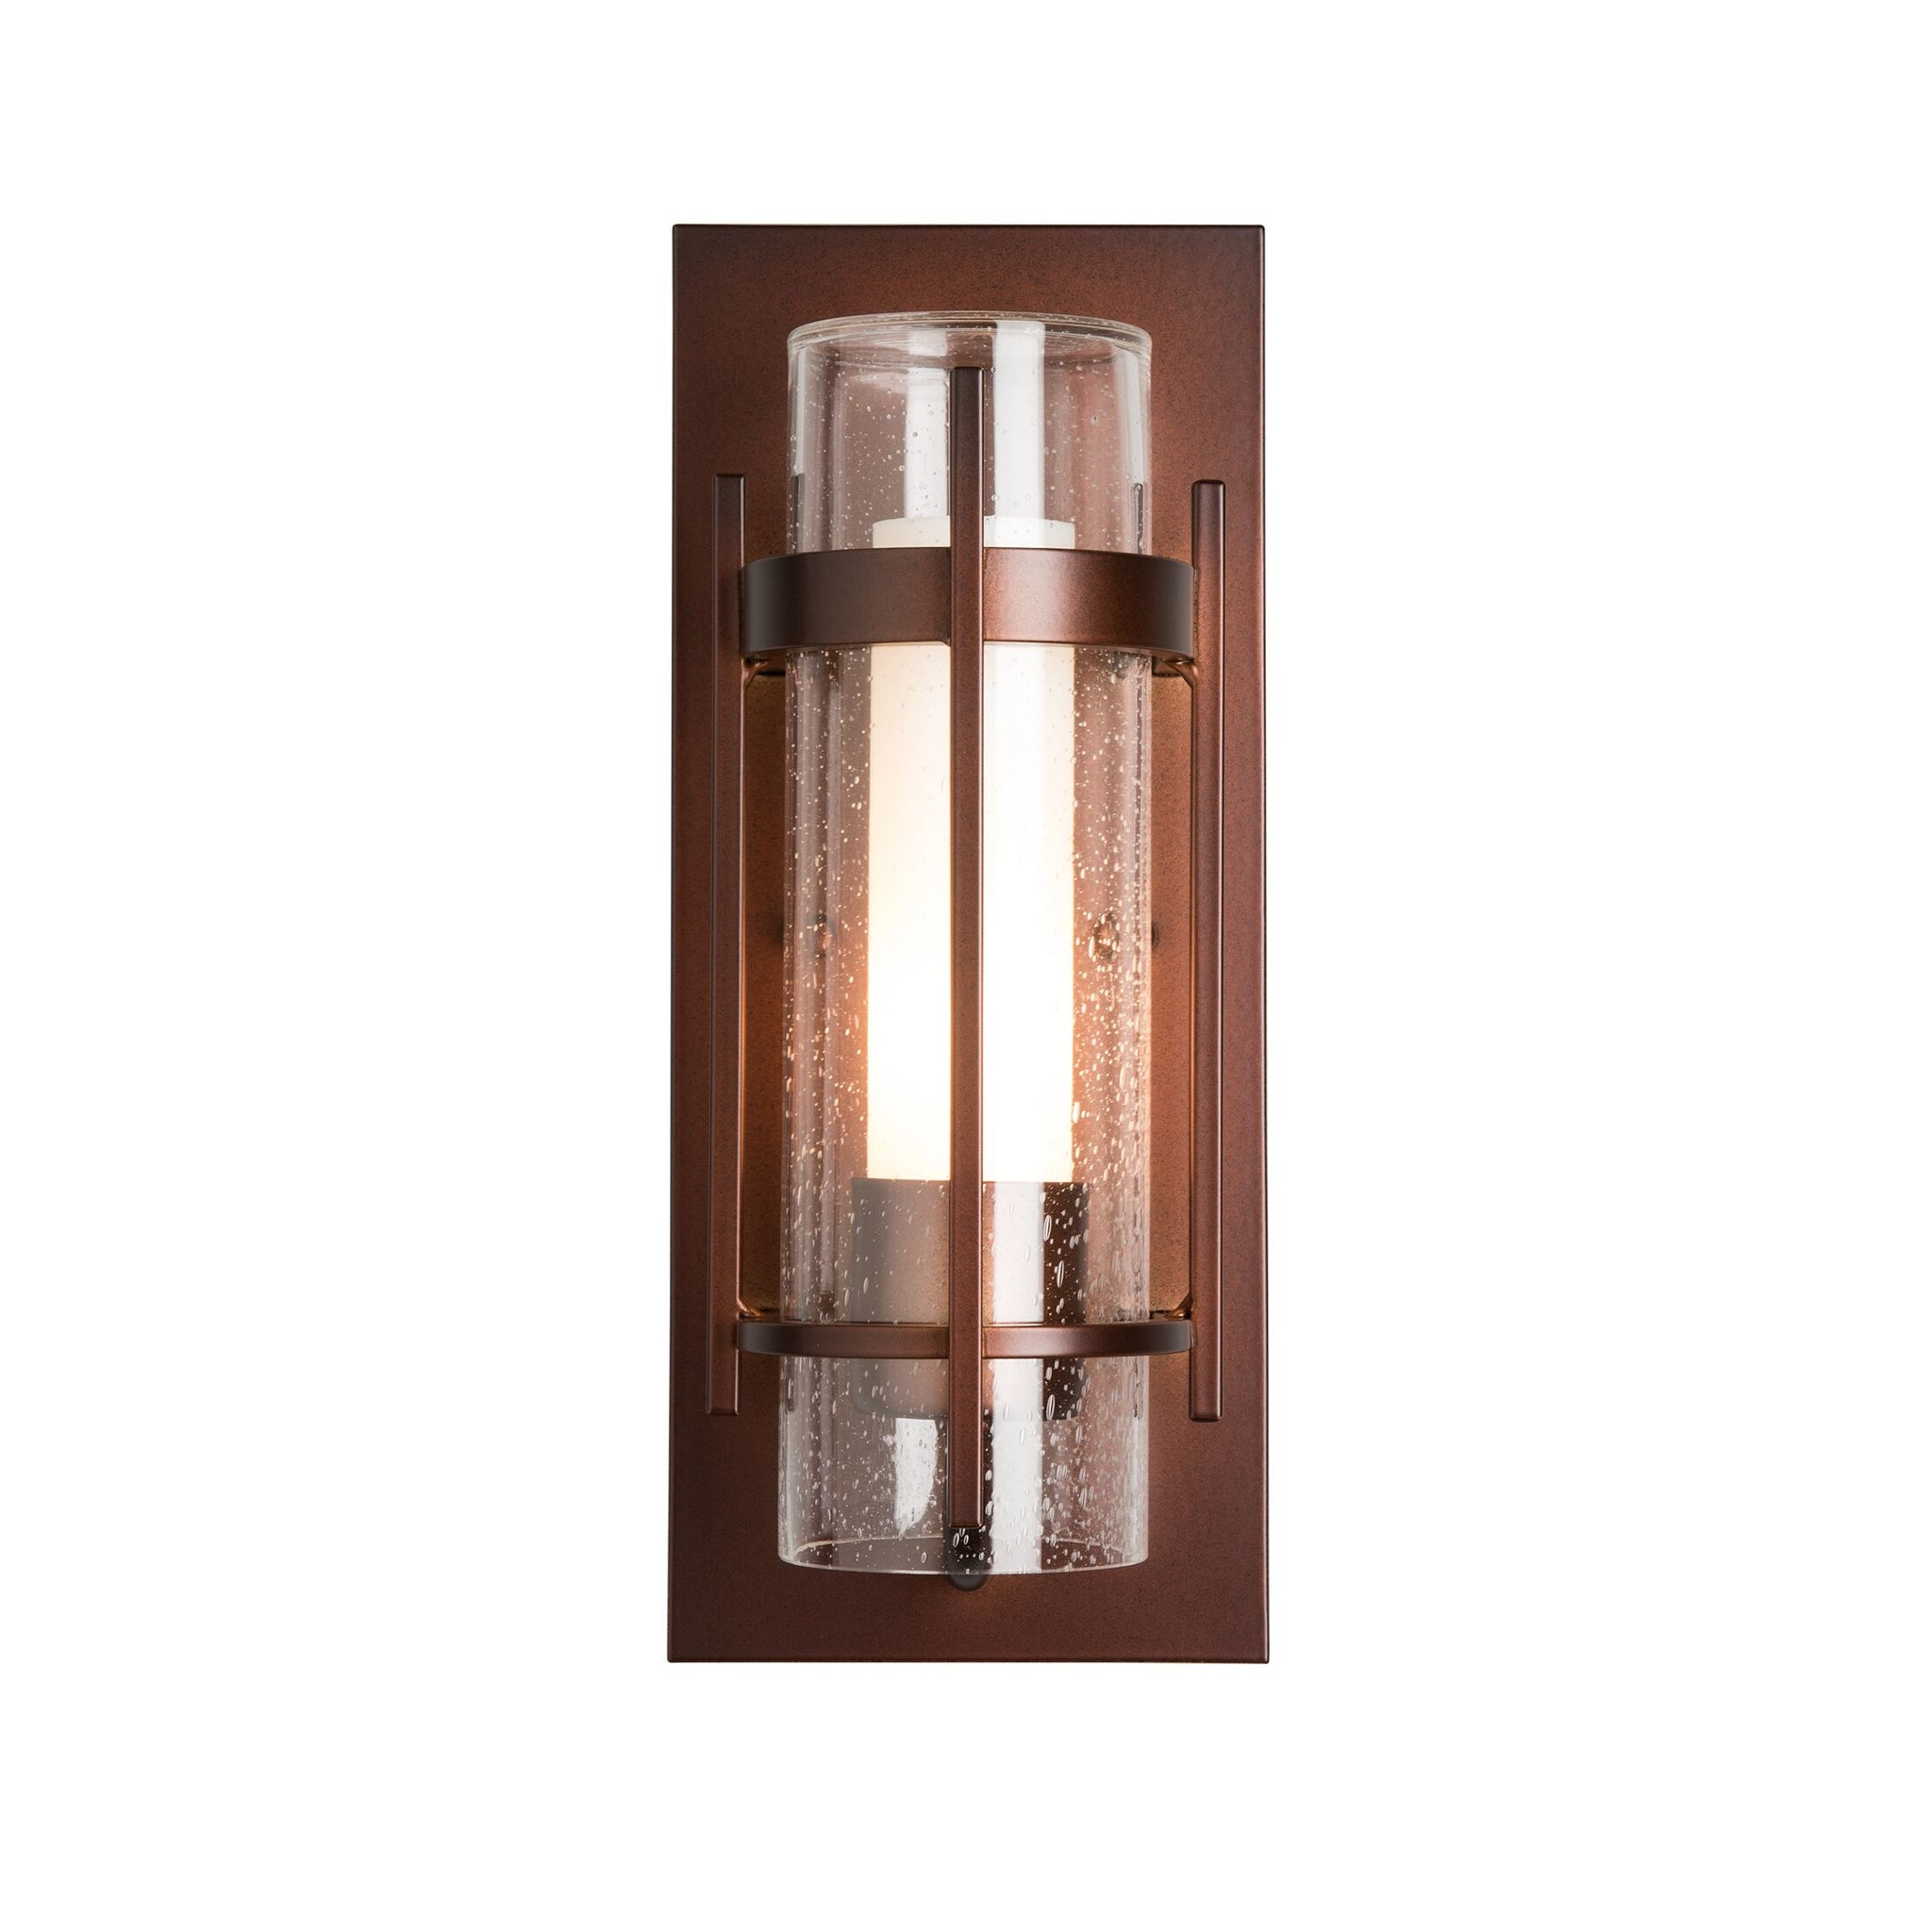 Banded Outdoor Sconce 305896, 305897, 305898, 305899